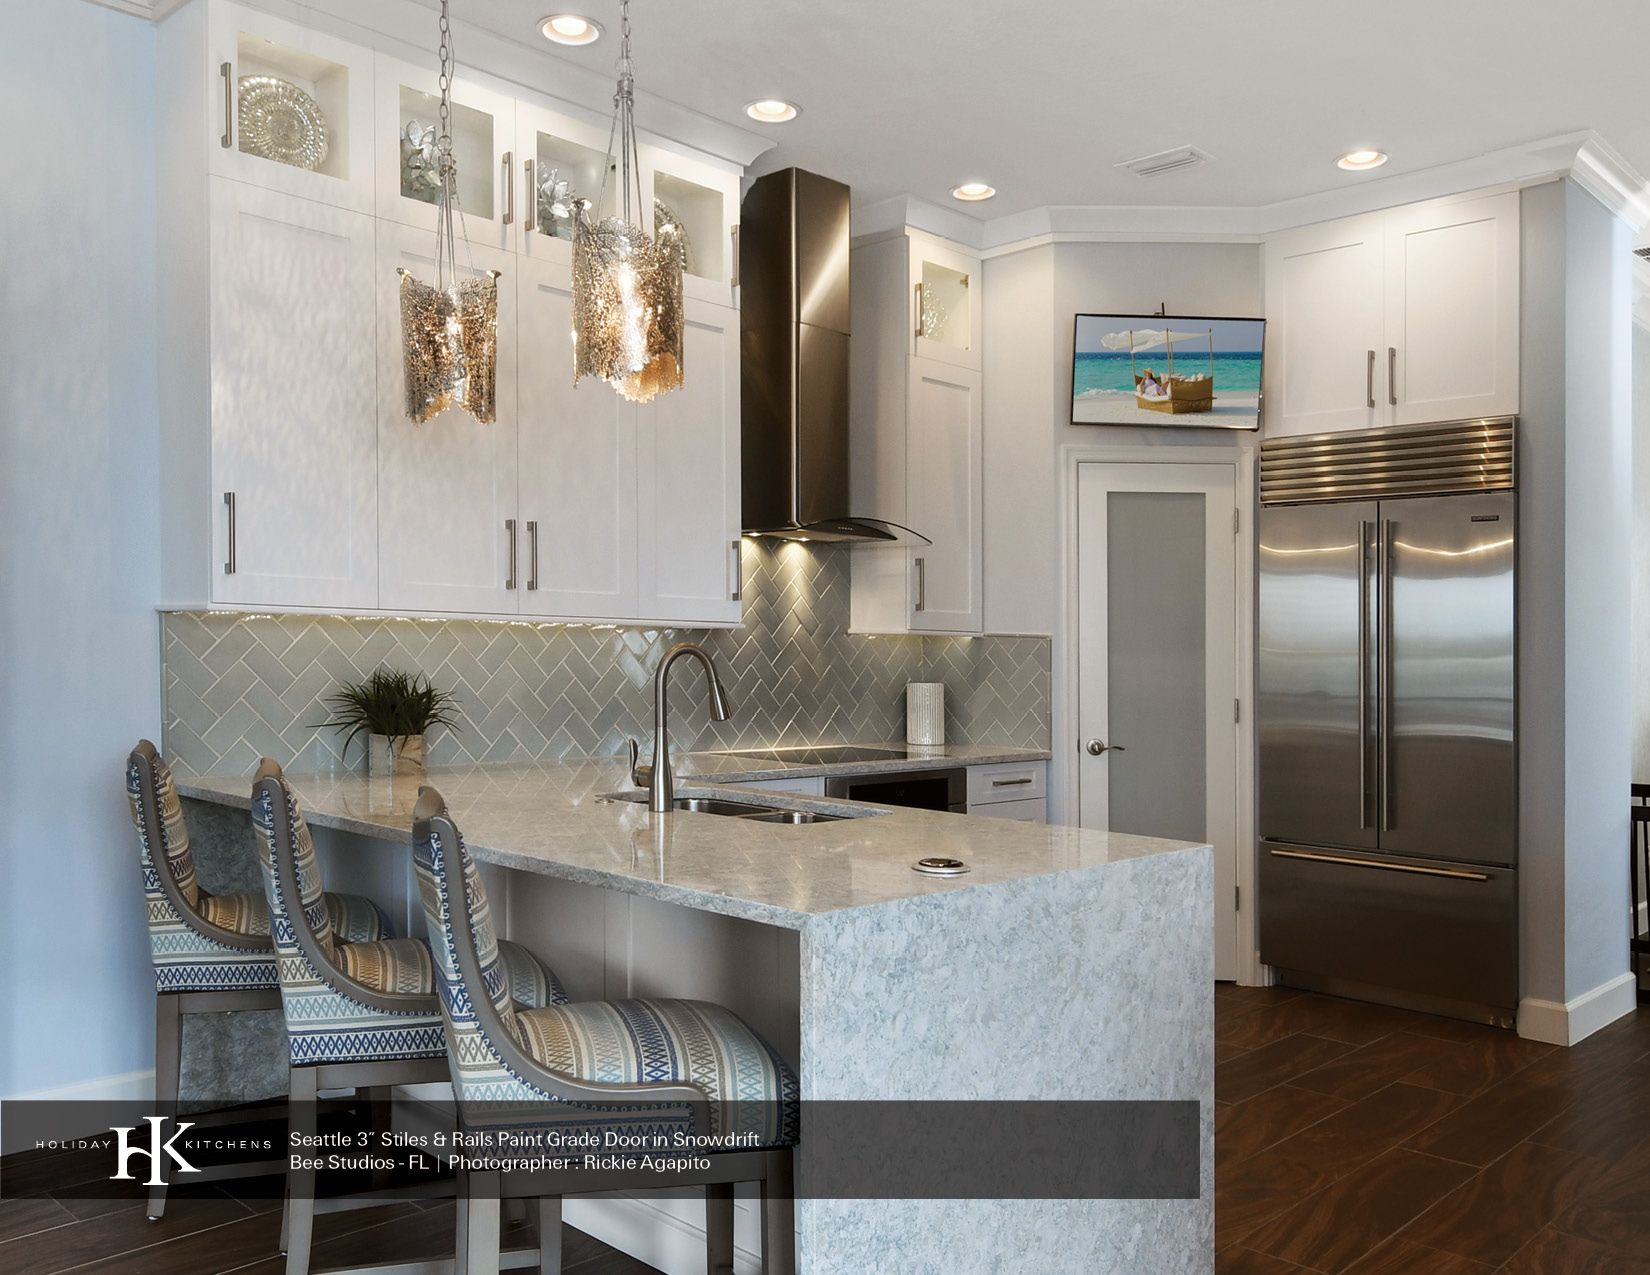 Like Simple White Shaker Cabinets Waterfall Counter Top Walk In Pantry With Proper Door No Glass Cabinet Doors Cabinets To Ceiling White Shaker Cabinets